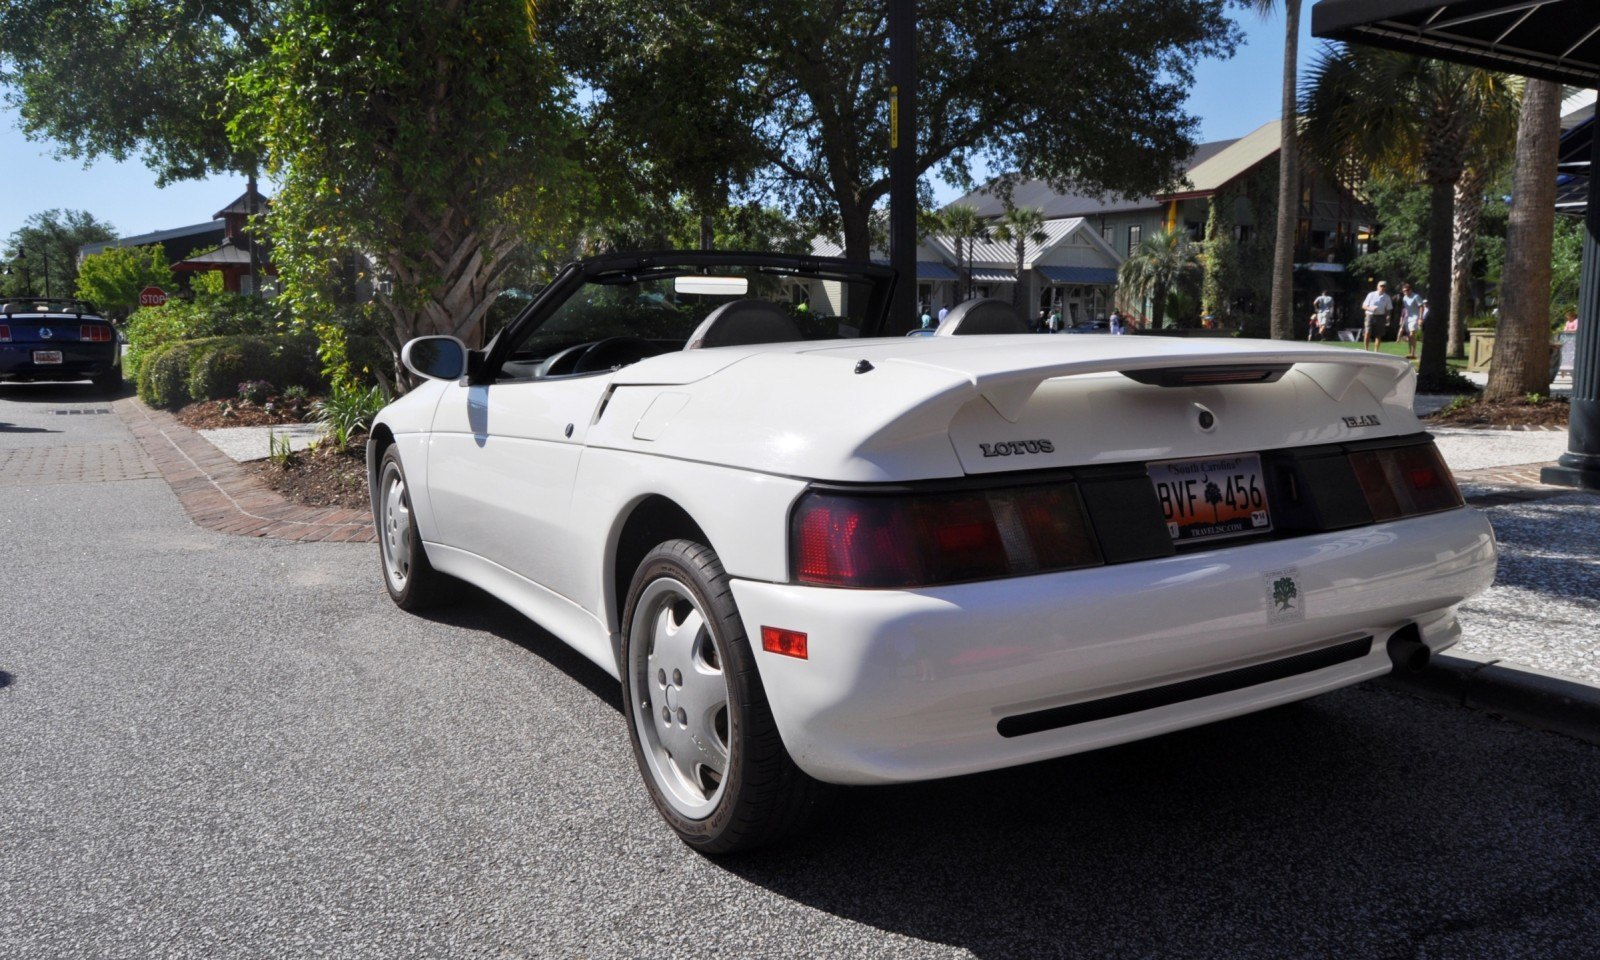 Rare Ragtops - A Pair of Lotus Elans Graced Kiawah Island, SC Cars and Coffee Today 12